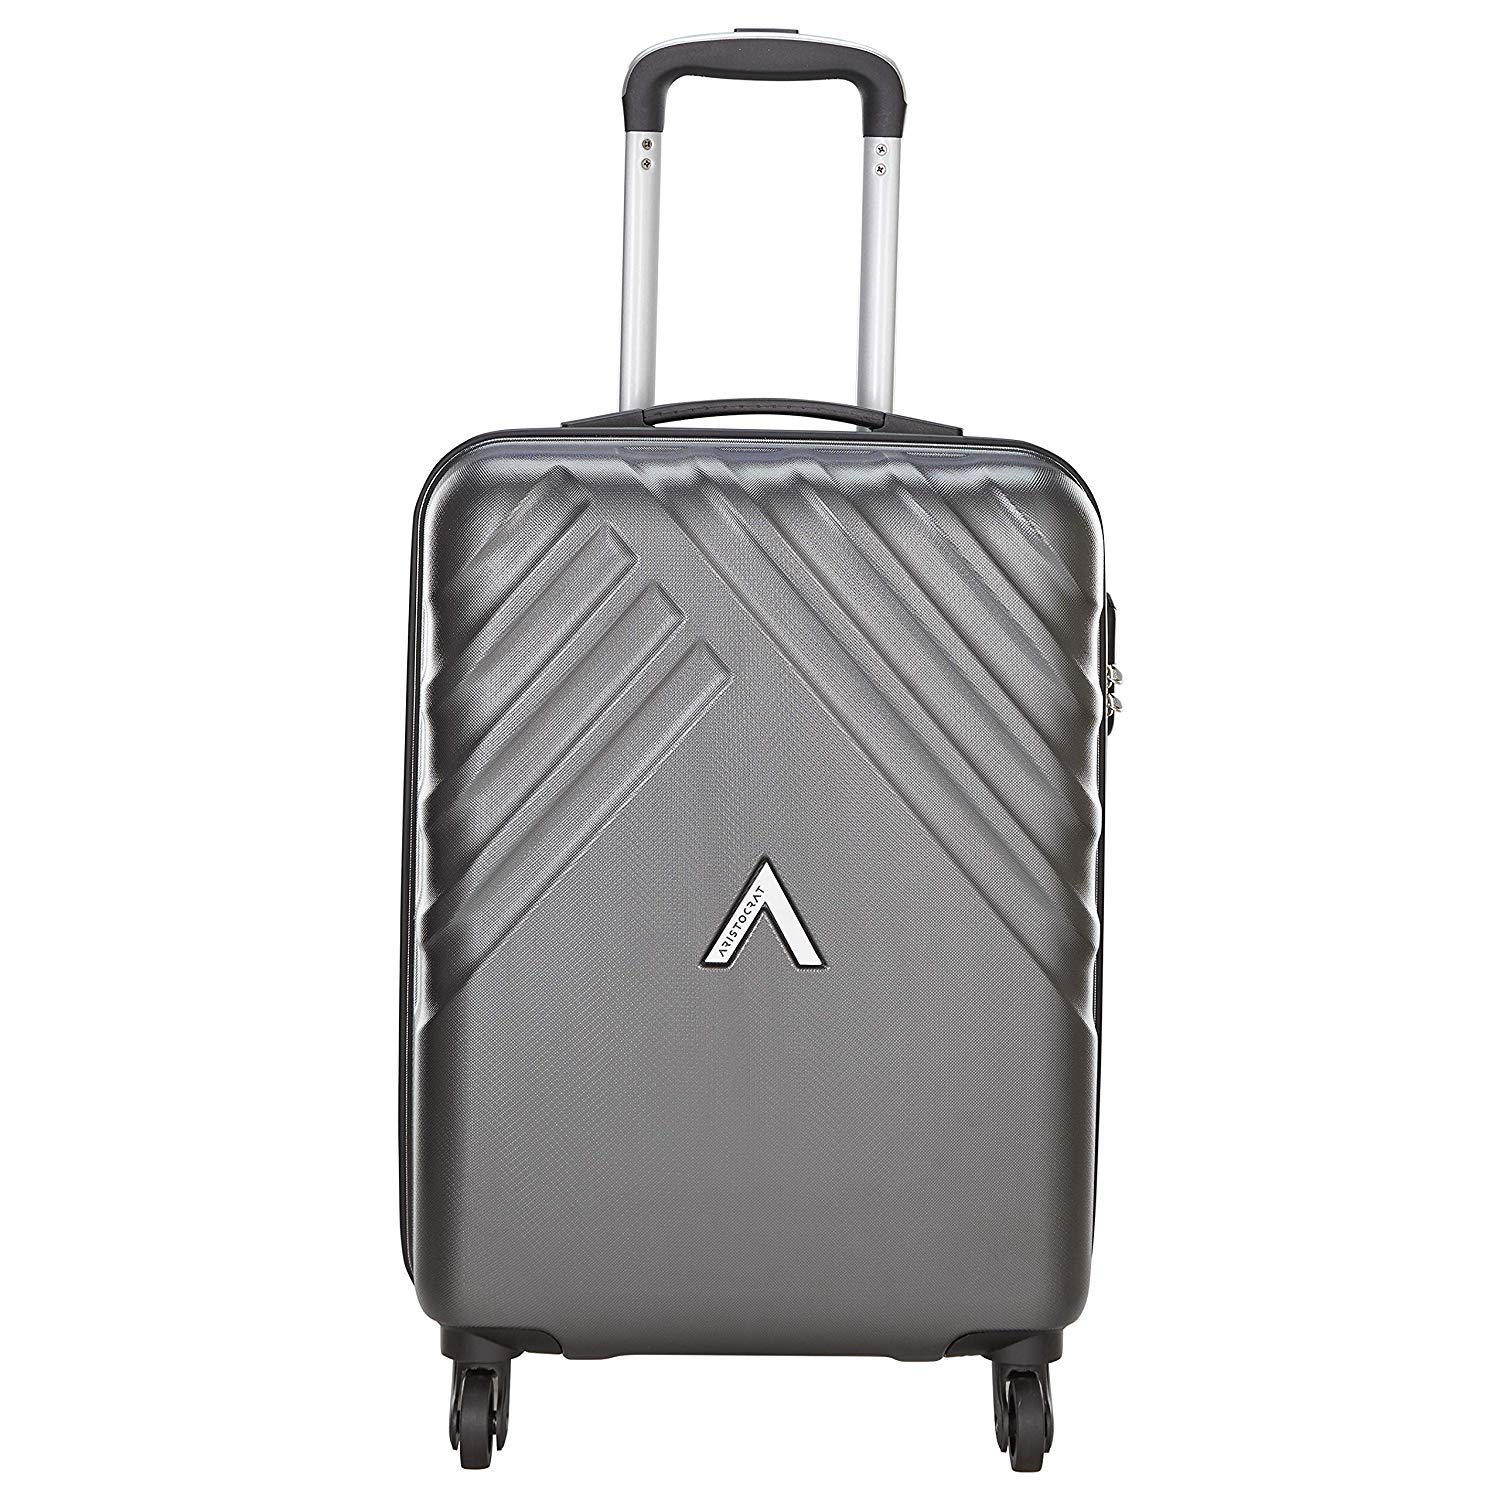 Aristocrat Polycarbonate 65 cms Grey Hardsided Check-in Luggage (Sienna) - 25.6 Inch